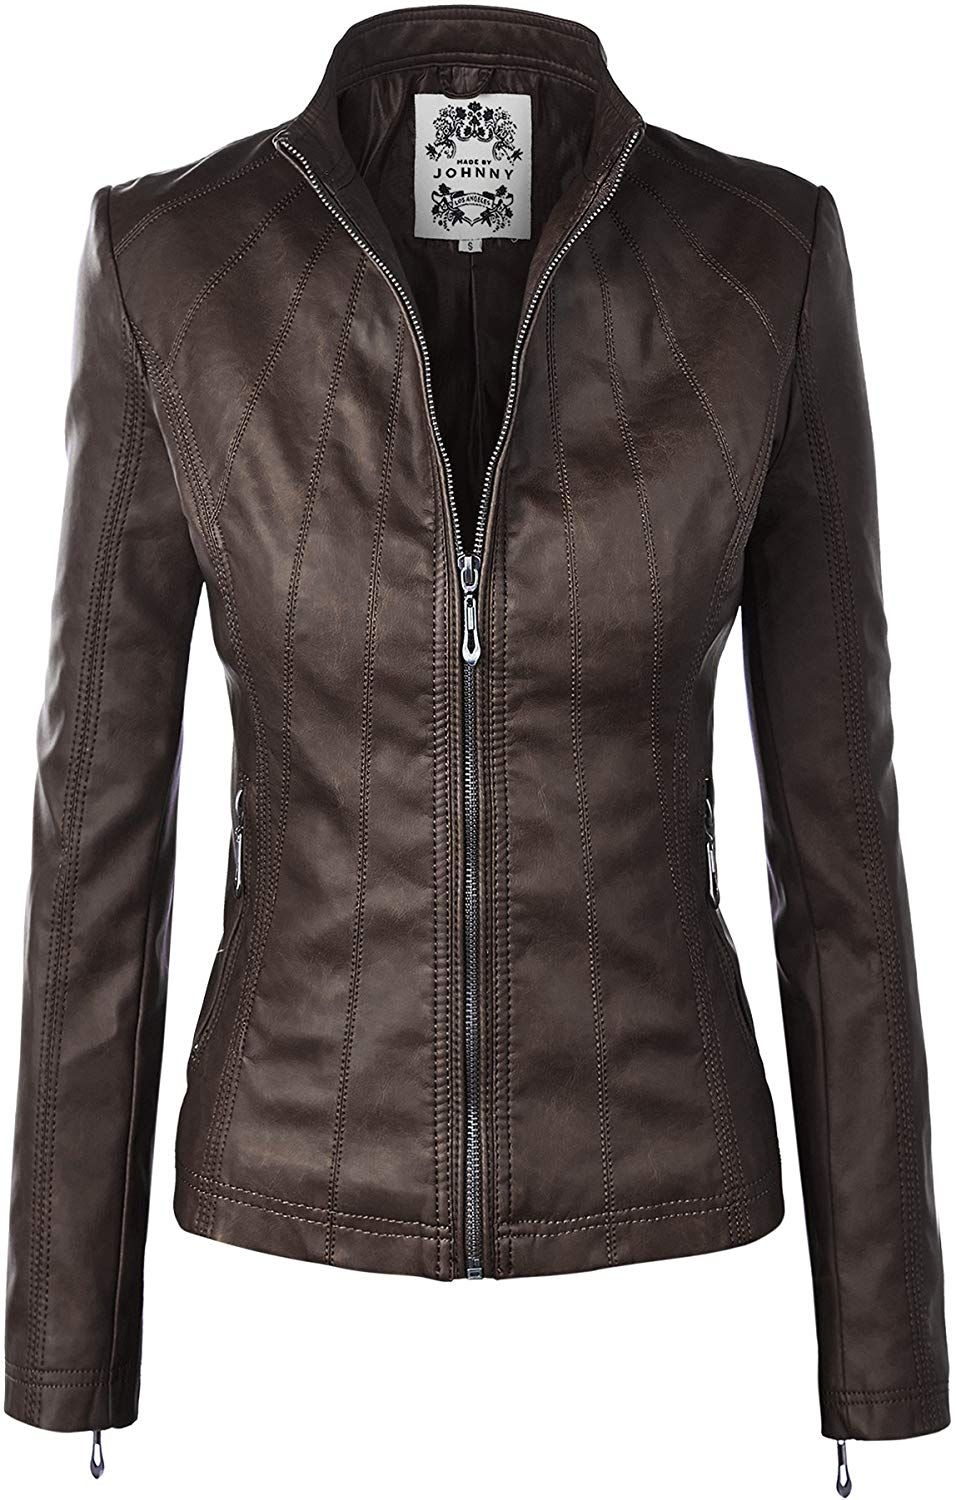 WJC877 Womens Panelled Faux Leather Moto Jacket S COFFEE